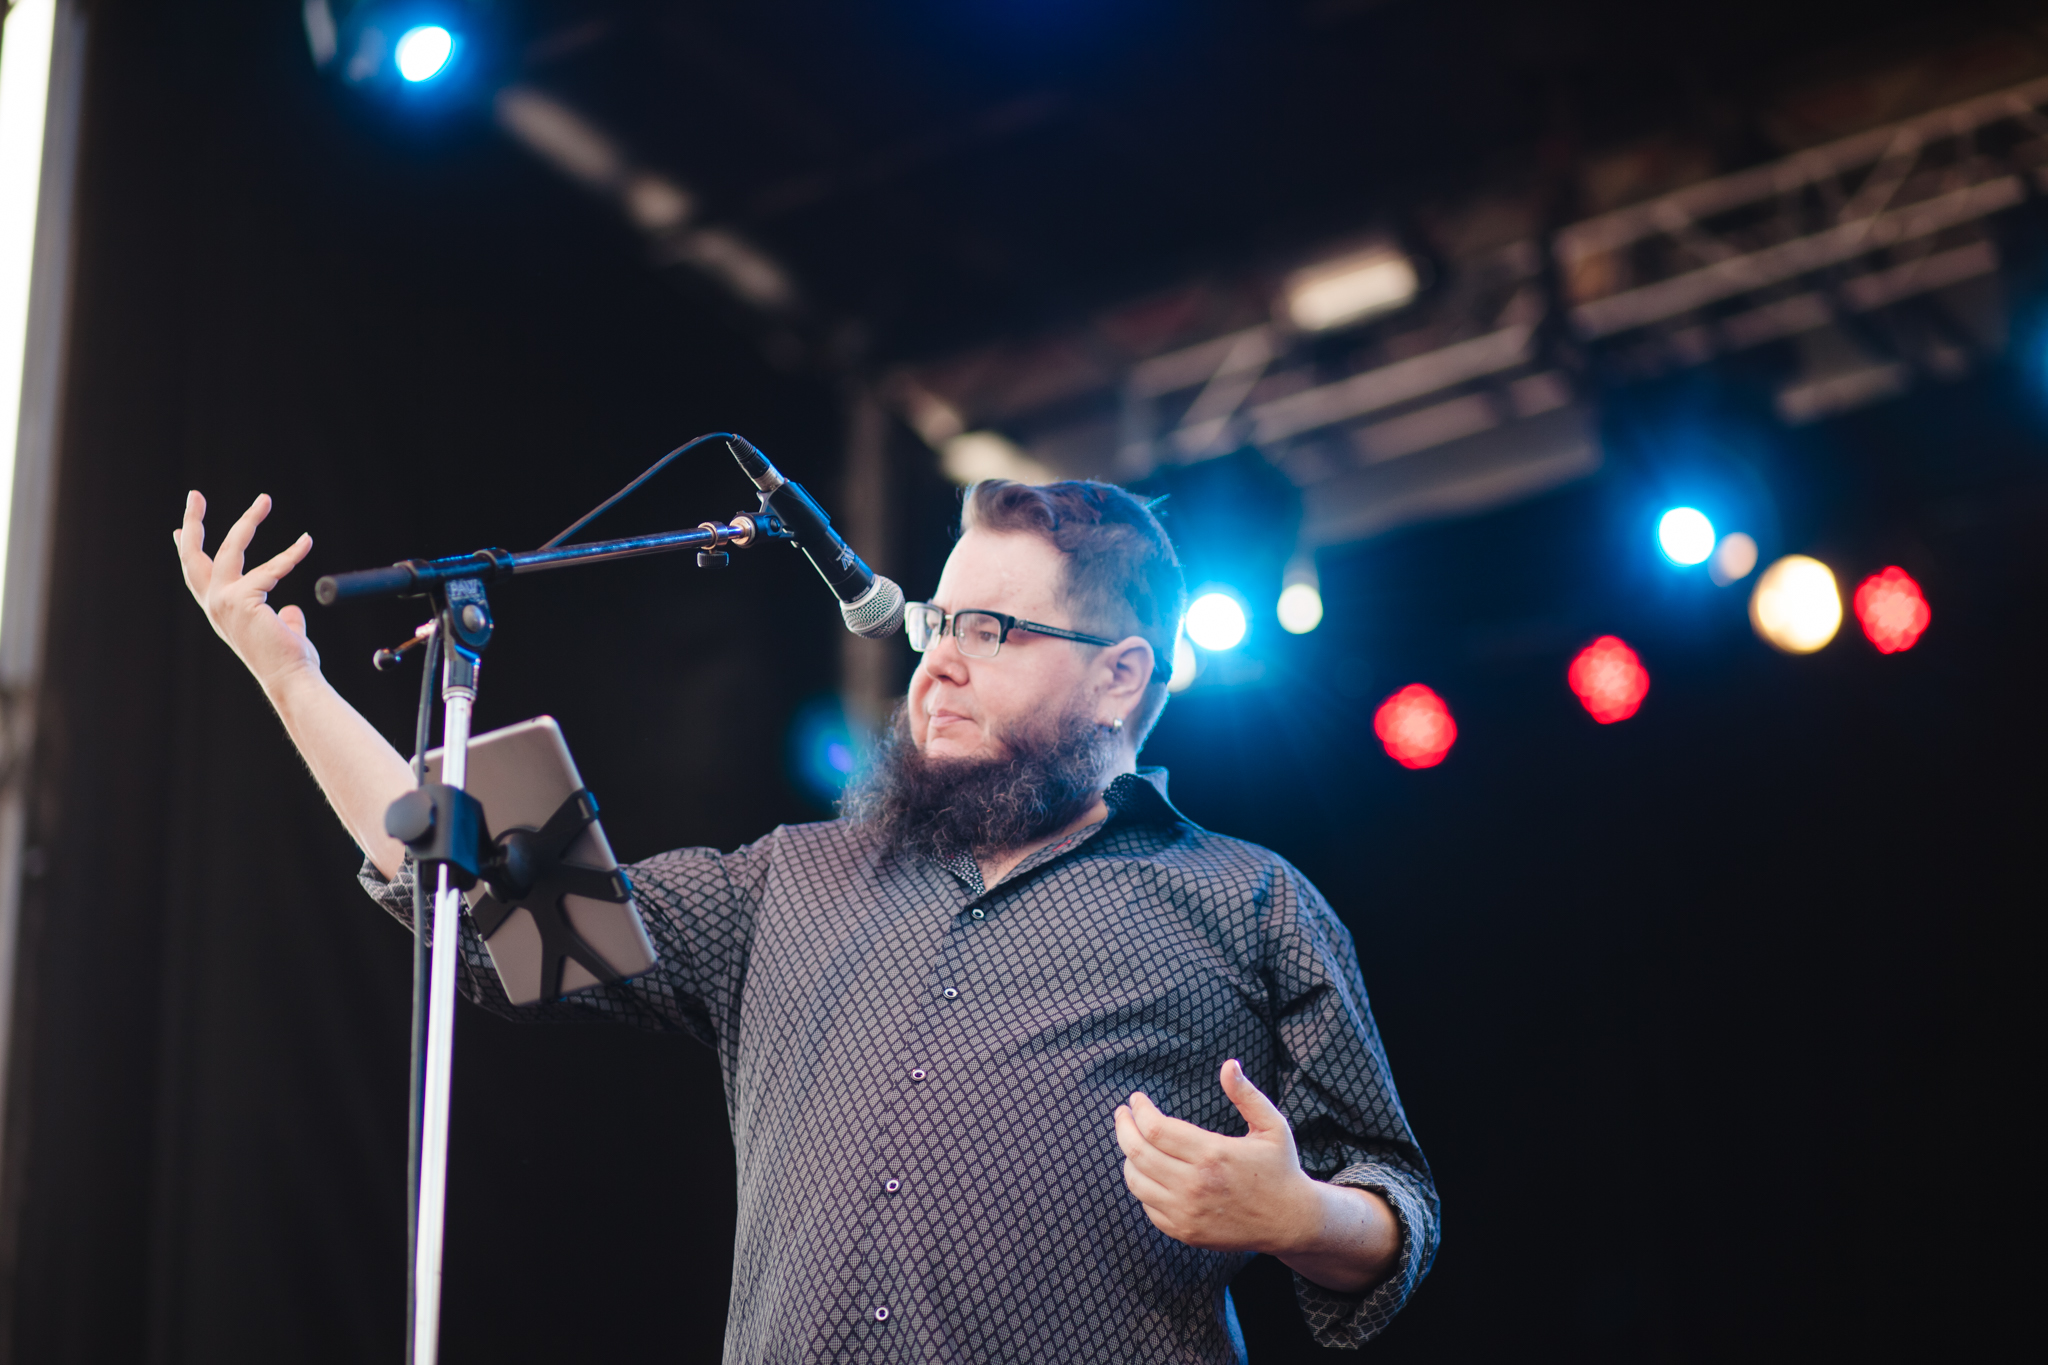 Shane Koyczan - Photo by Lindsey Blane